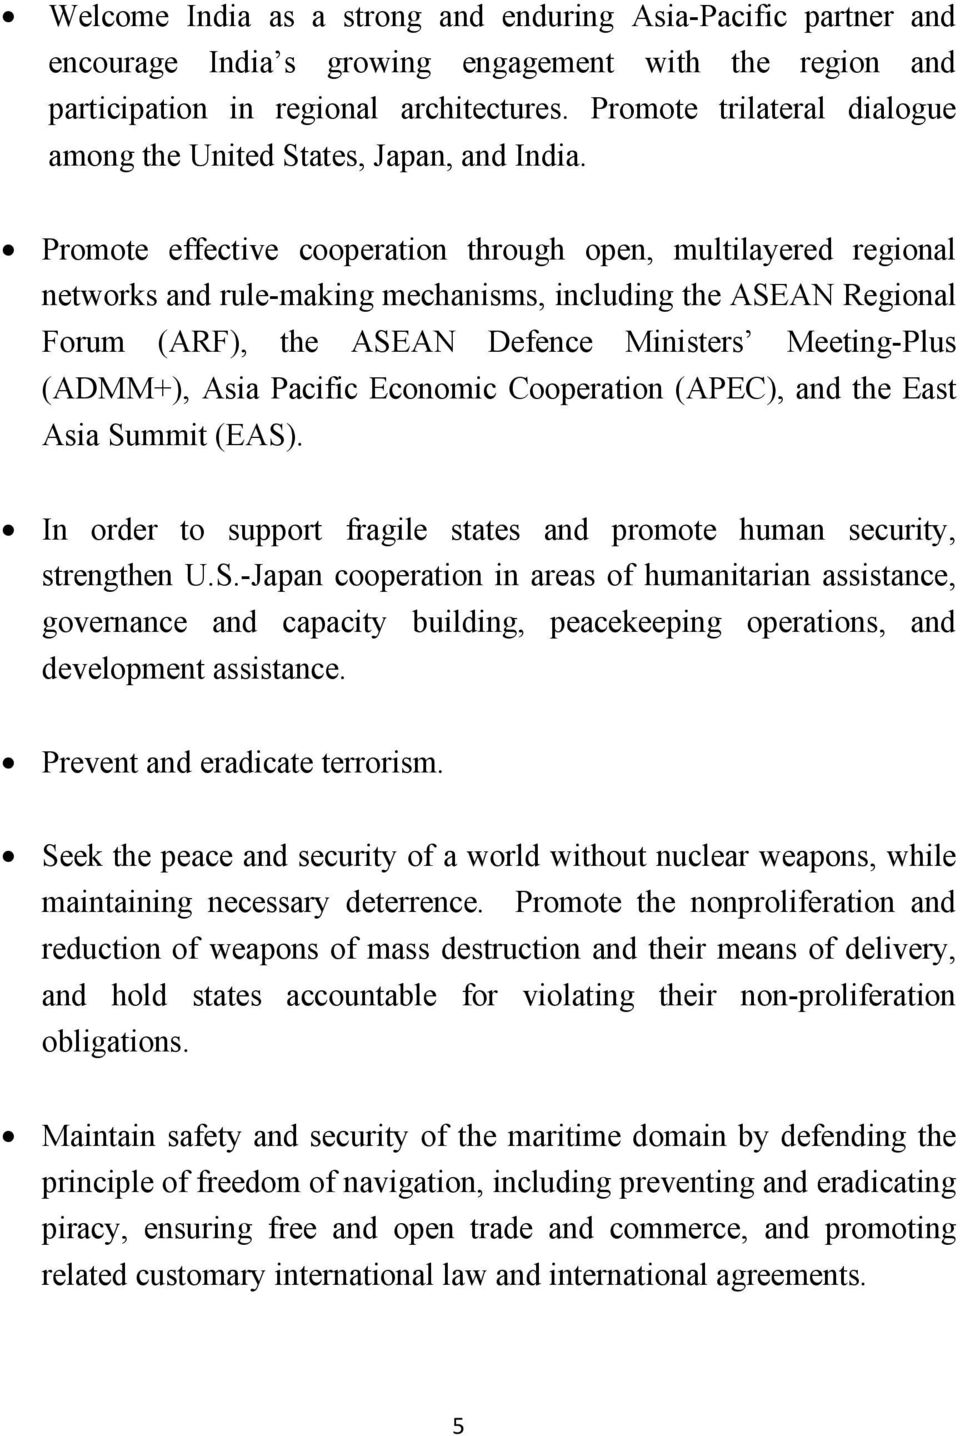 Promote effective cooperation through open, multilayered regional networks and rule-making mechanisms, including the ASEAN Regional Forum (ARF), the ASEAN Defence Ministers Meeting-Plus (ADMM+), Asia